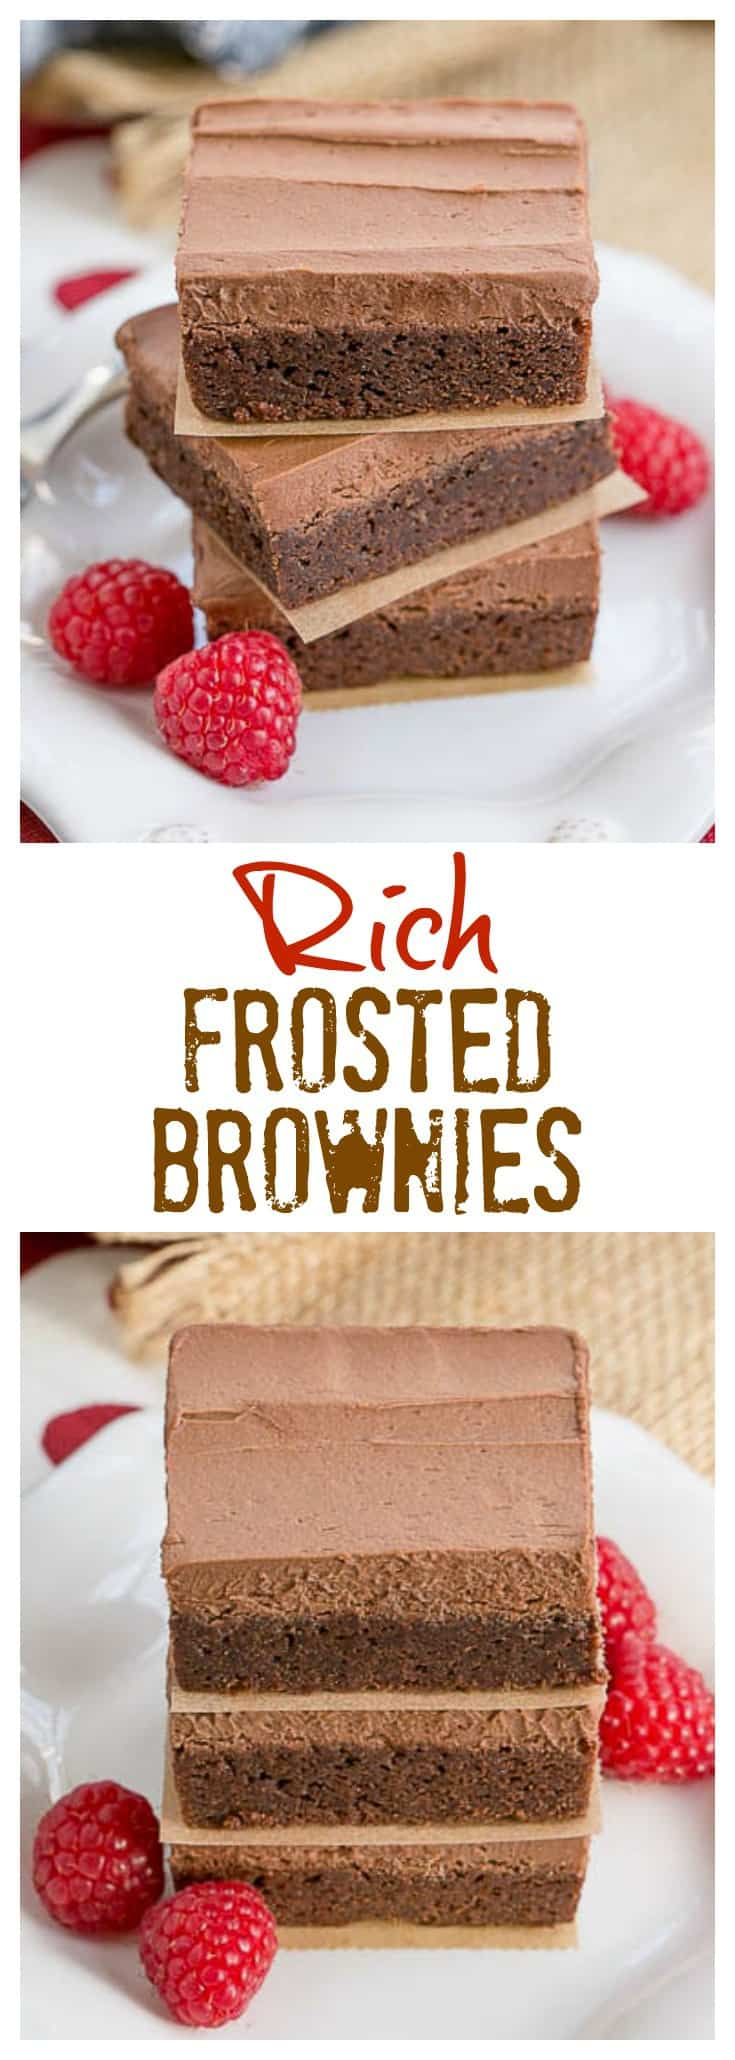 Rich Frosted Brownies - Fudgy brownies topped with rich, chocolate buttercream frosting